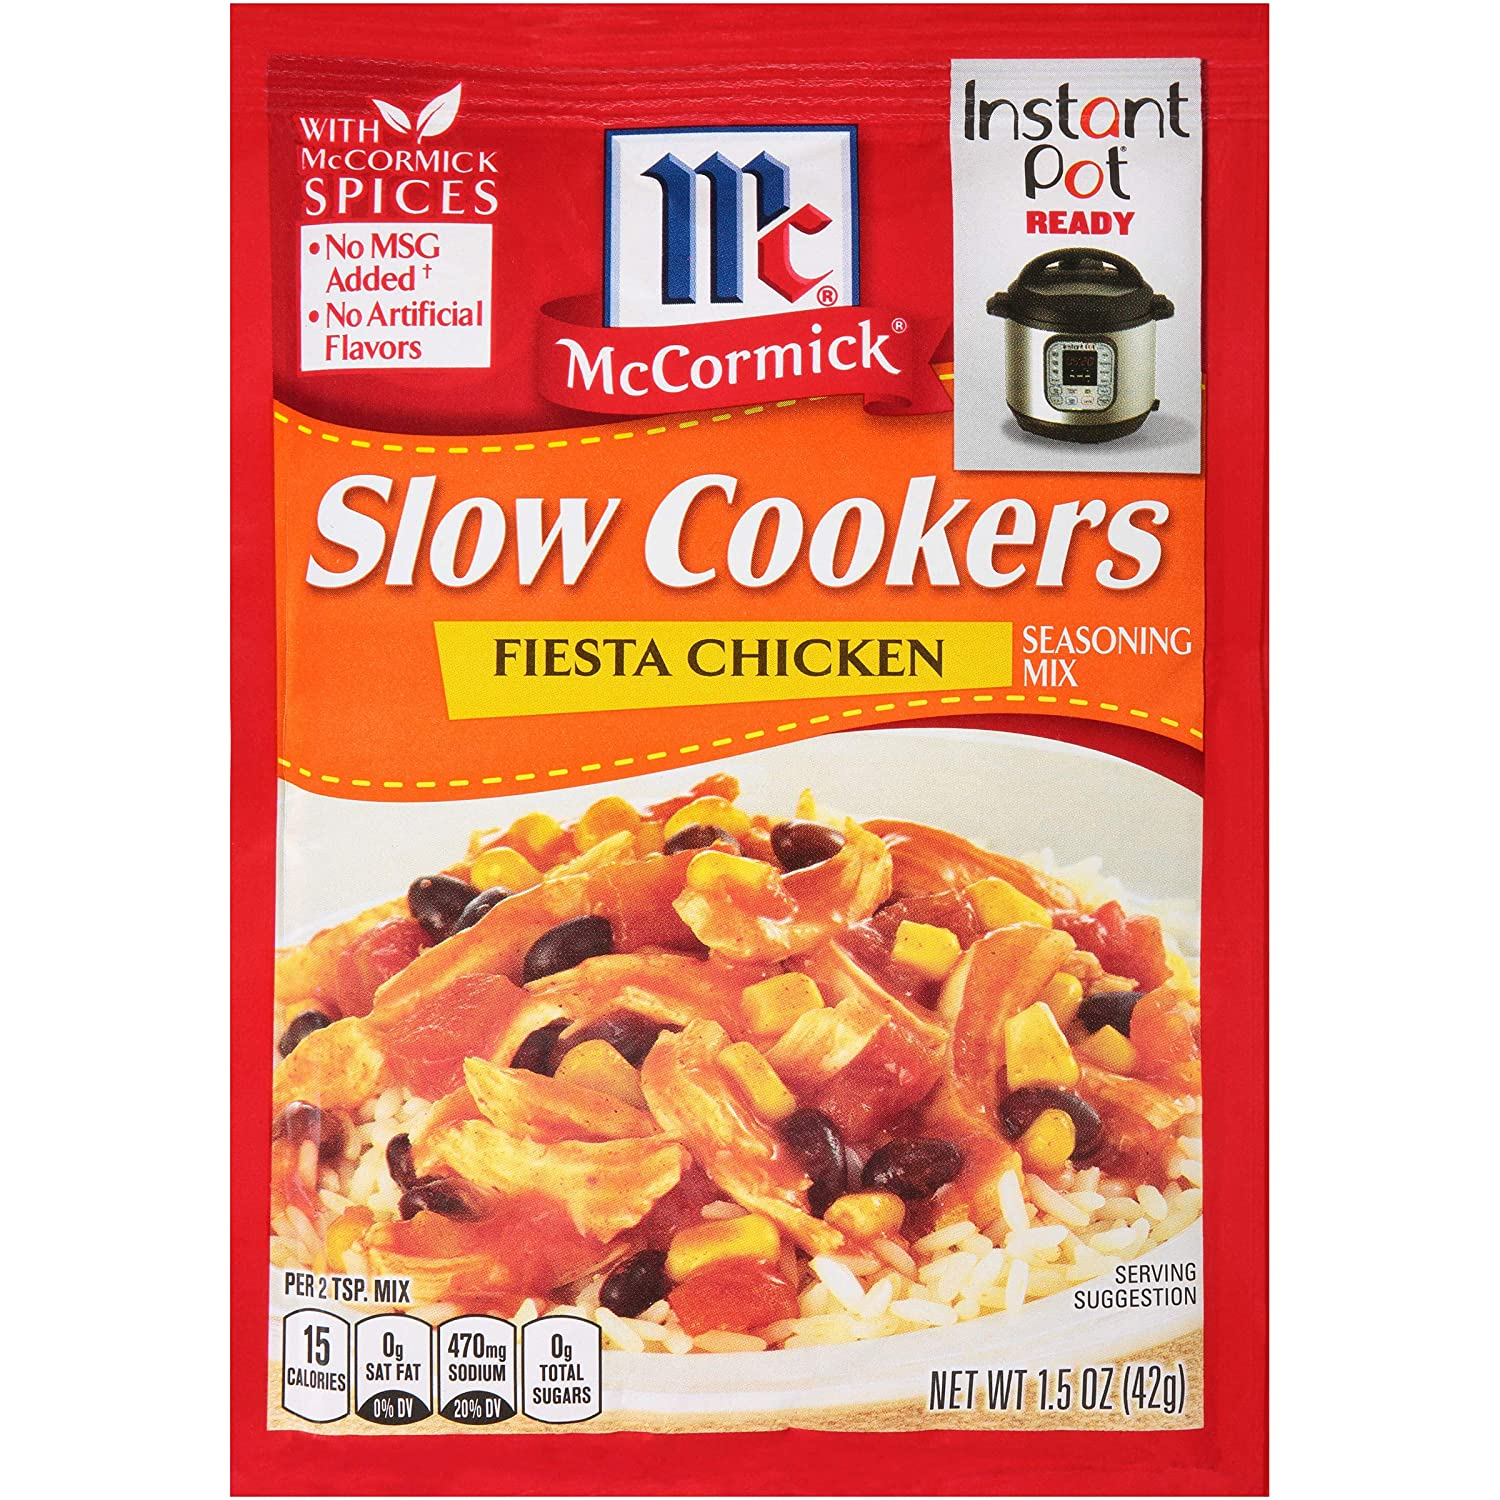 McCormickSlow Cookers Fiesta Chicken Seasoning Mix (Perfectly Seasoned Delicious Blend of Natural Southwest Spices Turns Just a Few Ingredients into a Slow-Cooked Feast!), 1.5 oz